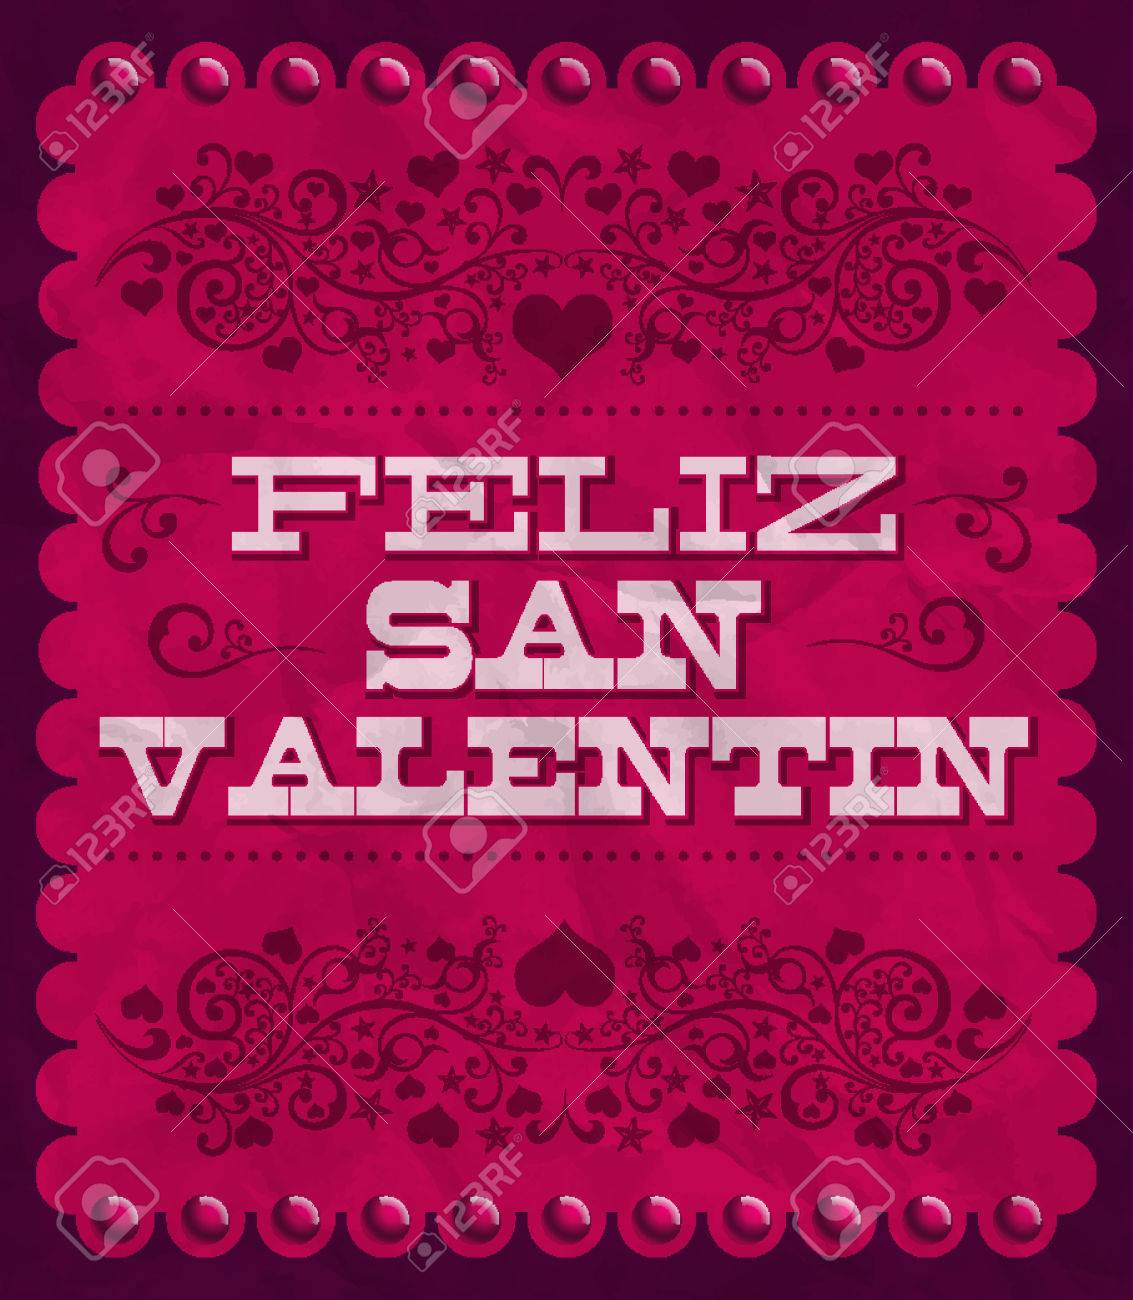 Feliz Dia De San Valentin   Happy Valentines Day Spanish Text   Vintage  Vector Card